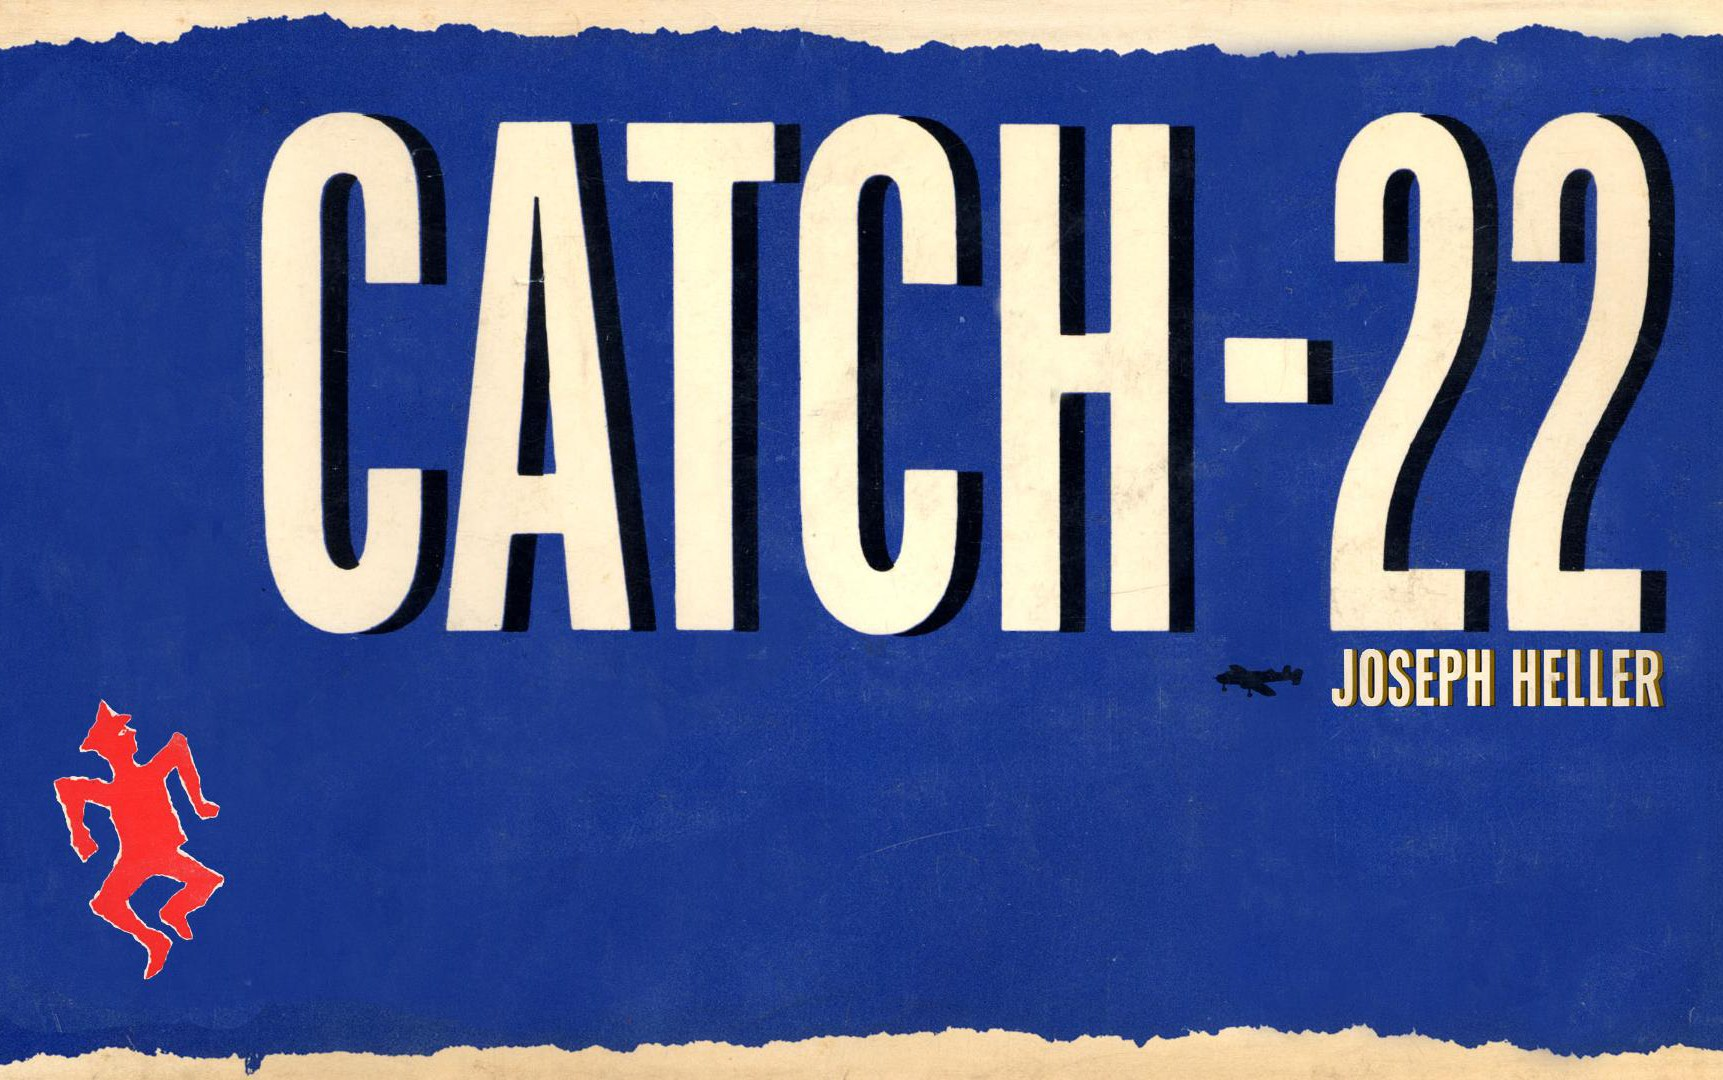 joseph hellers satire on the insanity of war in his novel catch 22 Catch 22, the novel by joseph heller, is an eye-opening representation of the insanity of war not necessarily the atrocities perpetrated during times of war, but rather the illogic, chaos, and absurdity of it the novel ties in satire, absurd antics, dark humor and even some not so humorous darker parts.